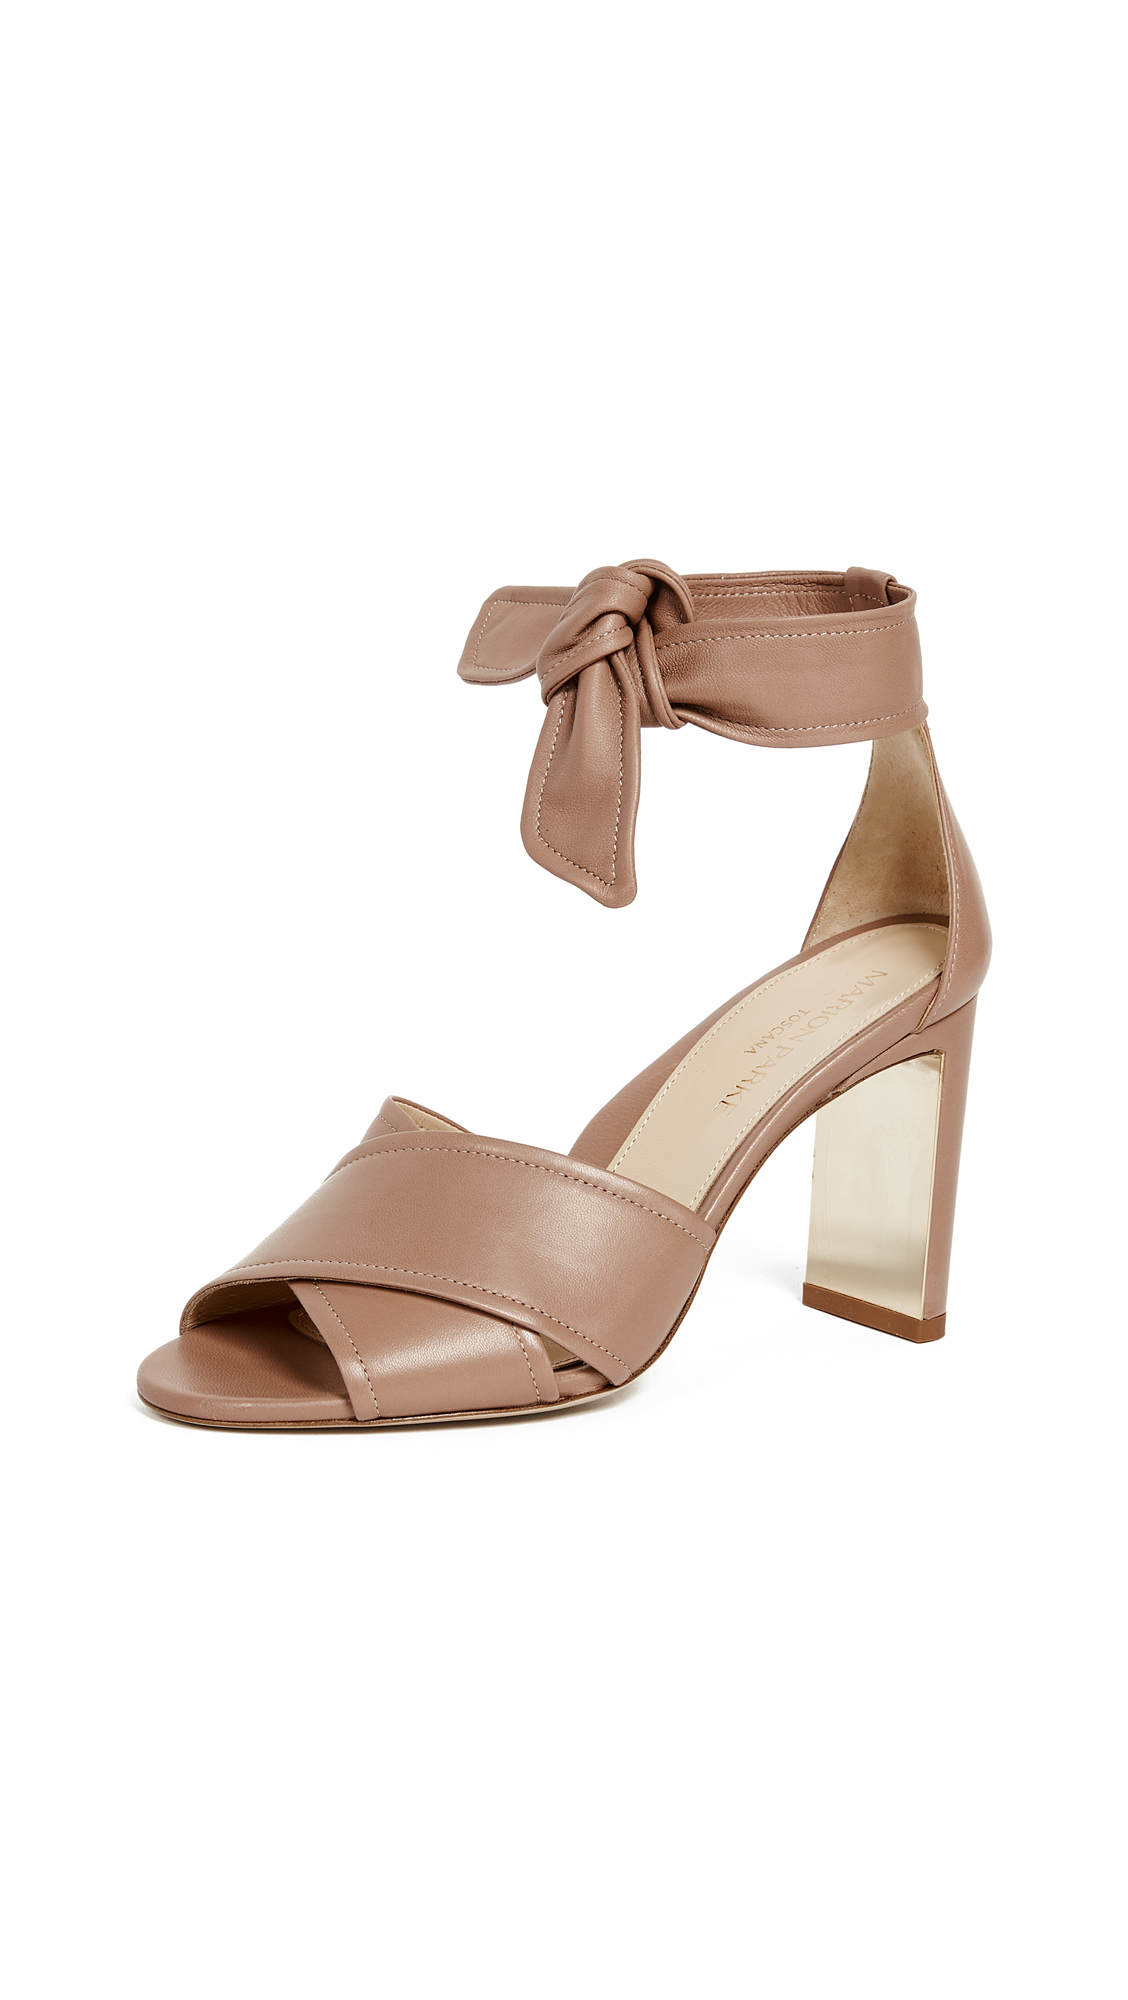 Marion Parke Leah Sandals - Blush